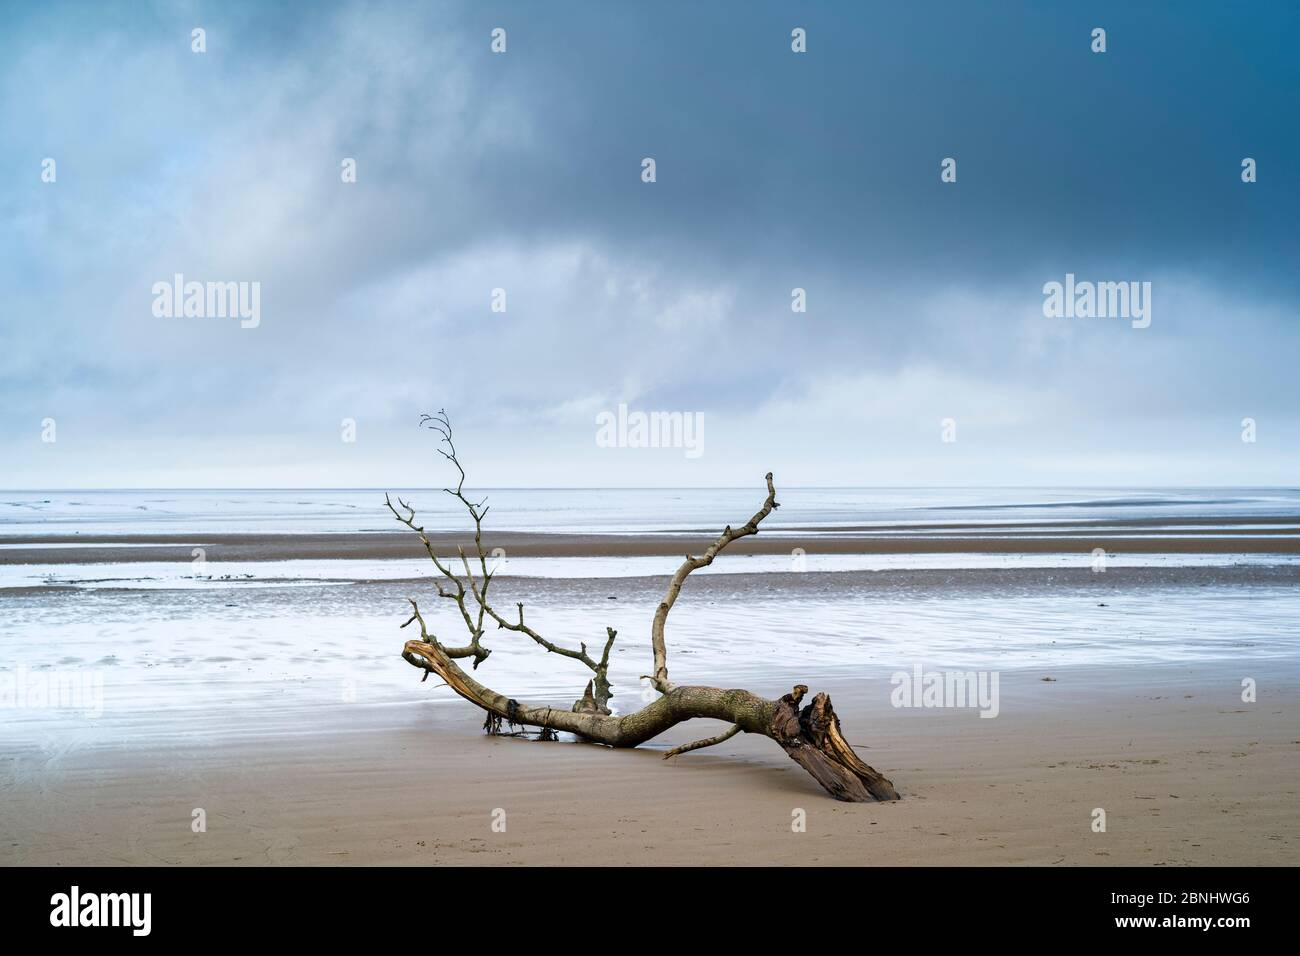 Driftwood - graphic image of dead branch washed up by the sea of the Bristol Channel onto sandy beach at Burnham-on-Sea, Somerset, UK Stock Photo